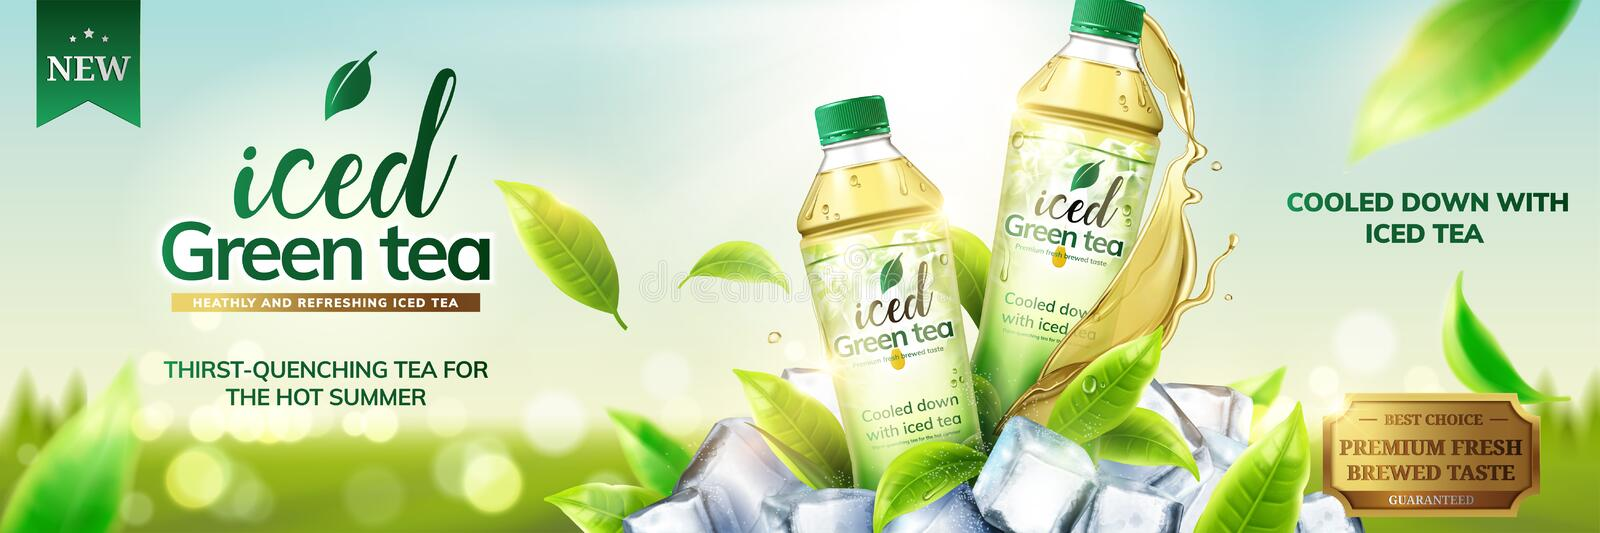 Iced green tea ads. With bottles on ice cubs and leaves flying around them, 3d illustration on bokeh background vector illustration